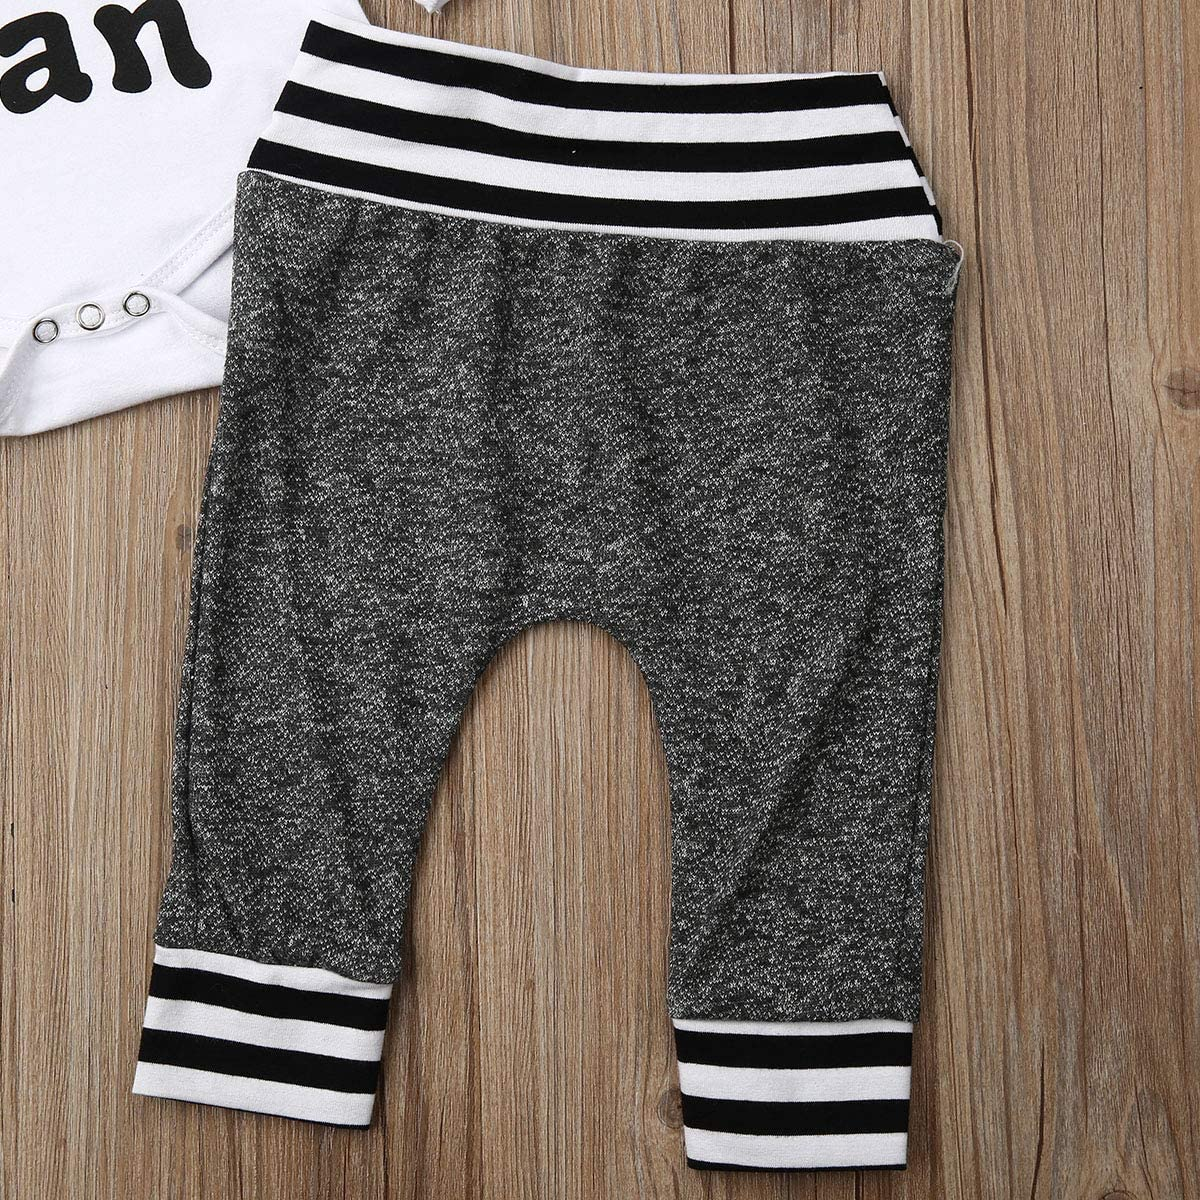 Newborn Infant Baby Boys Outfits Three Piece Romper Bodysuit Cotton Pants Little Man Beanie Sleepers Clothes Set